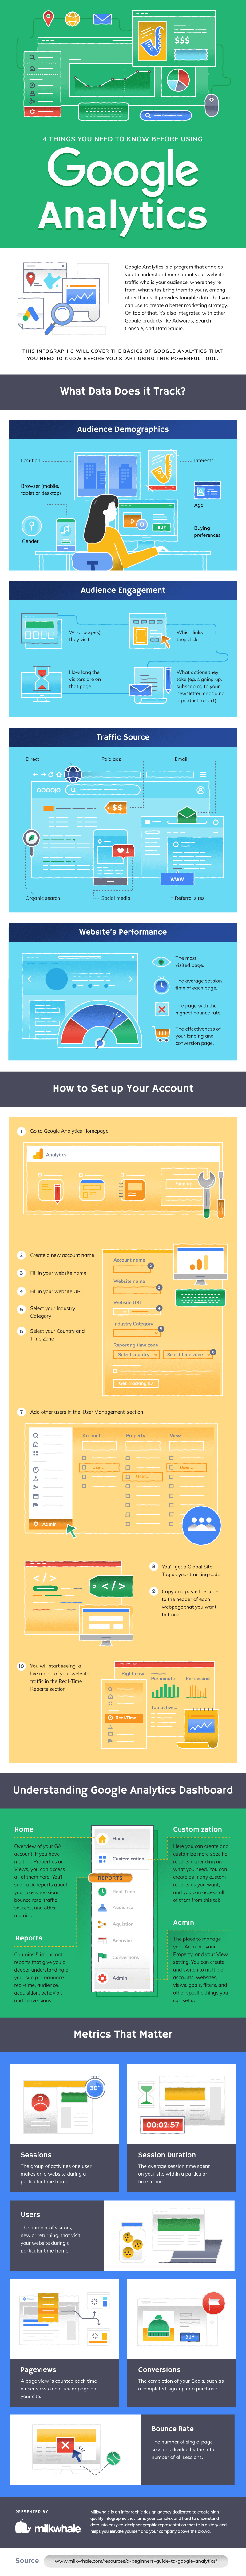 4 Things You Need to Know Before Using Google Analytics